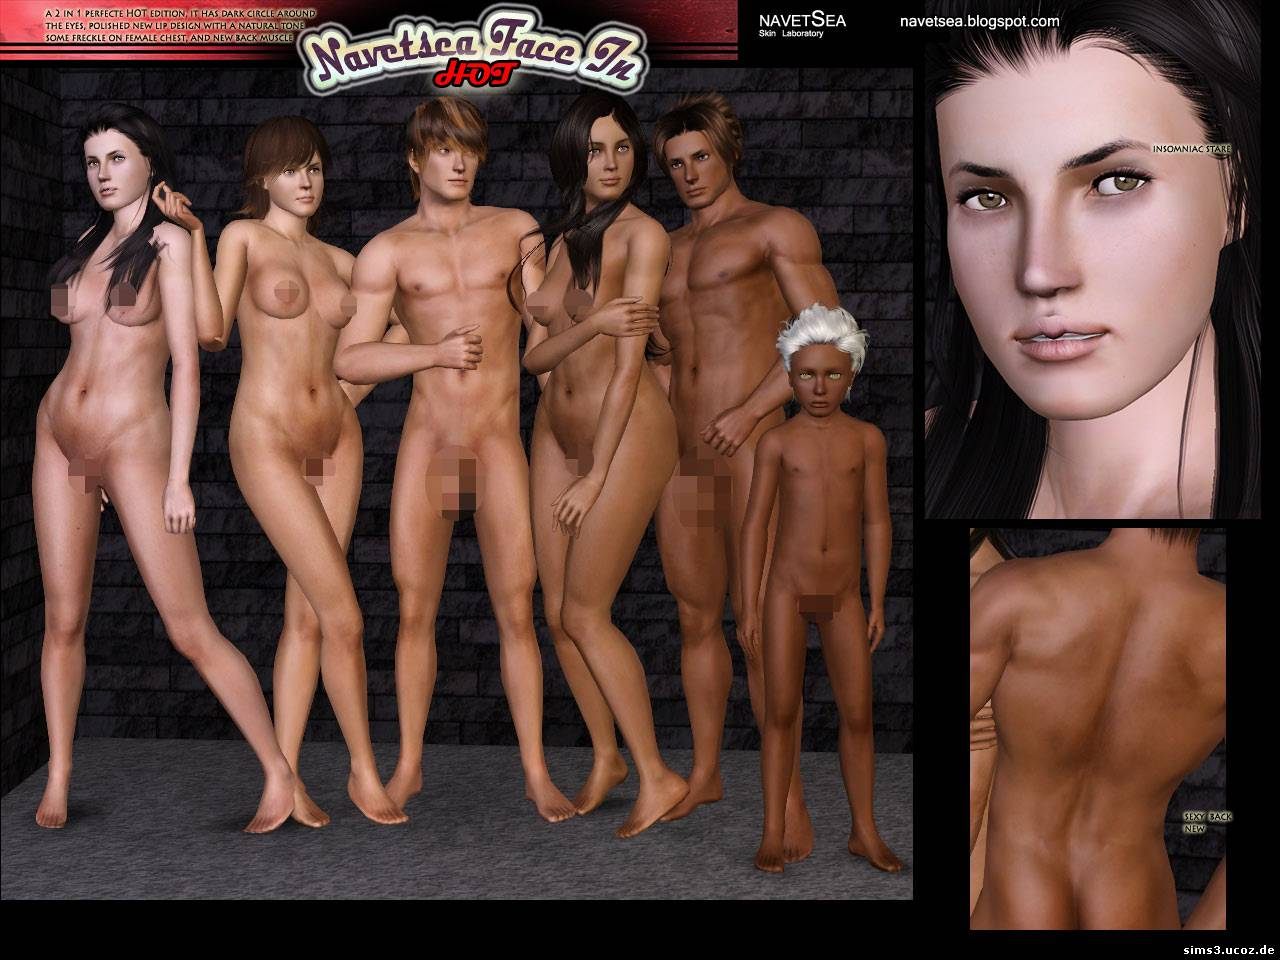 The sims2 xxx mod pics adult picture